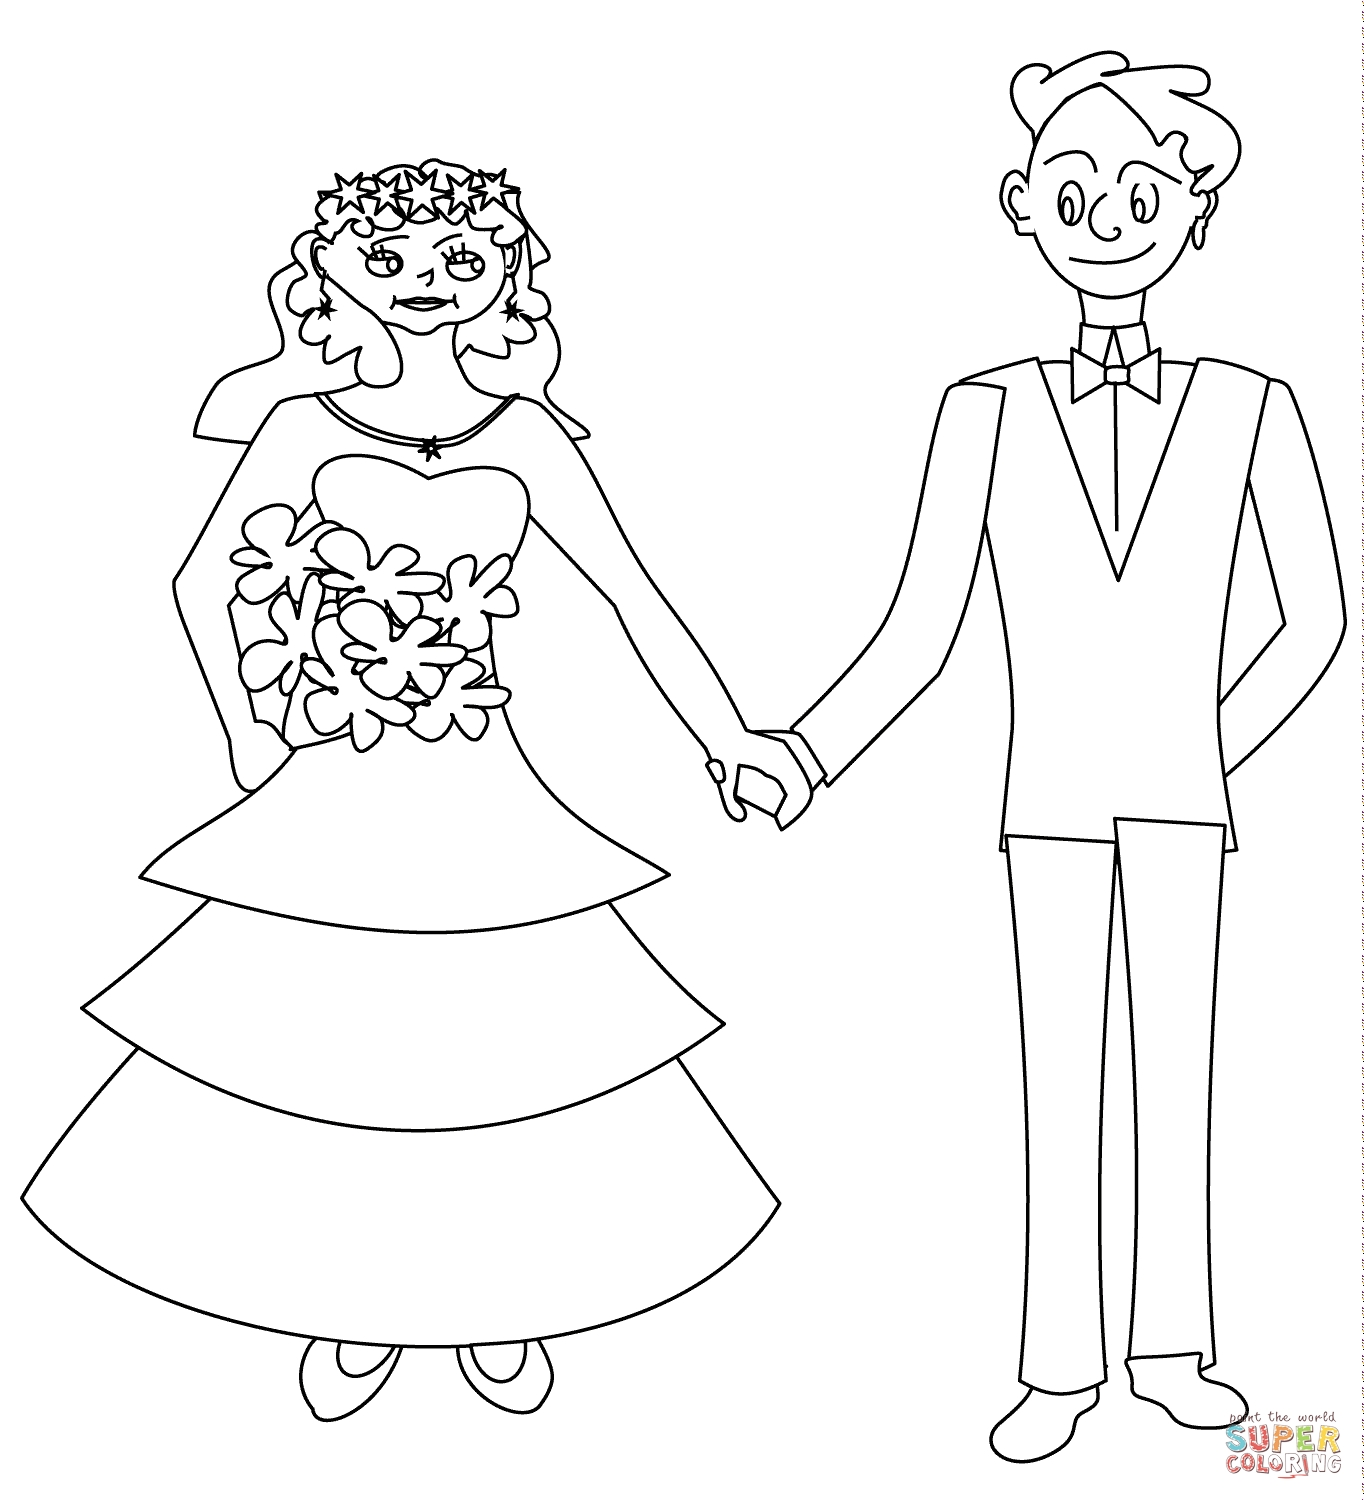 1364x1500 Top Bride Coloring Pages Free Coloring Page To Print